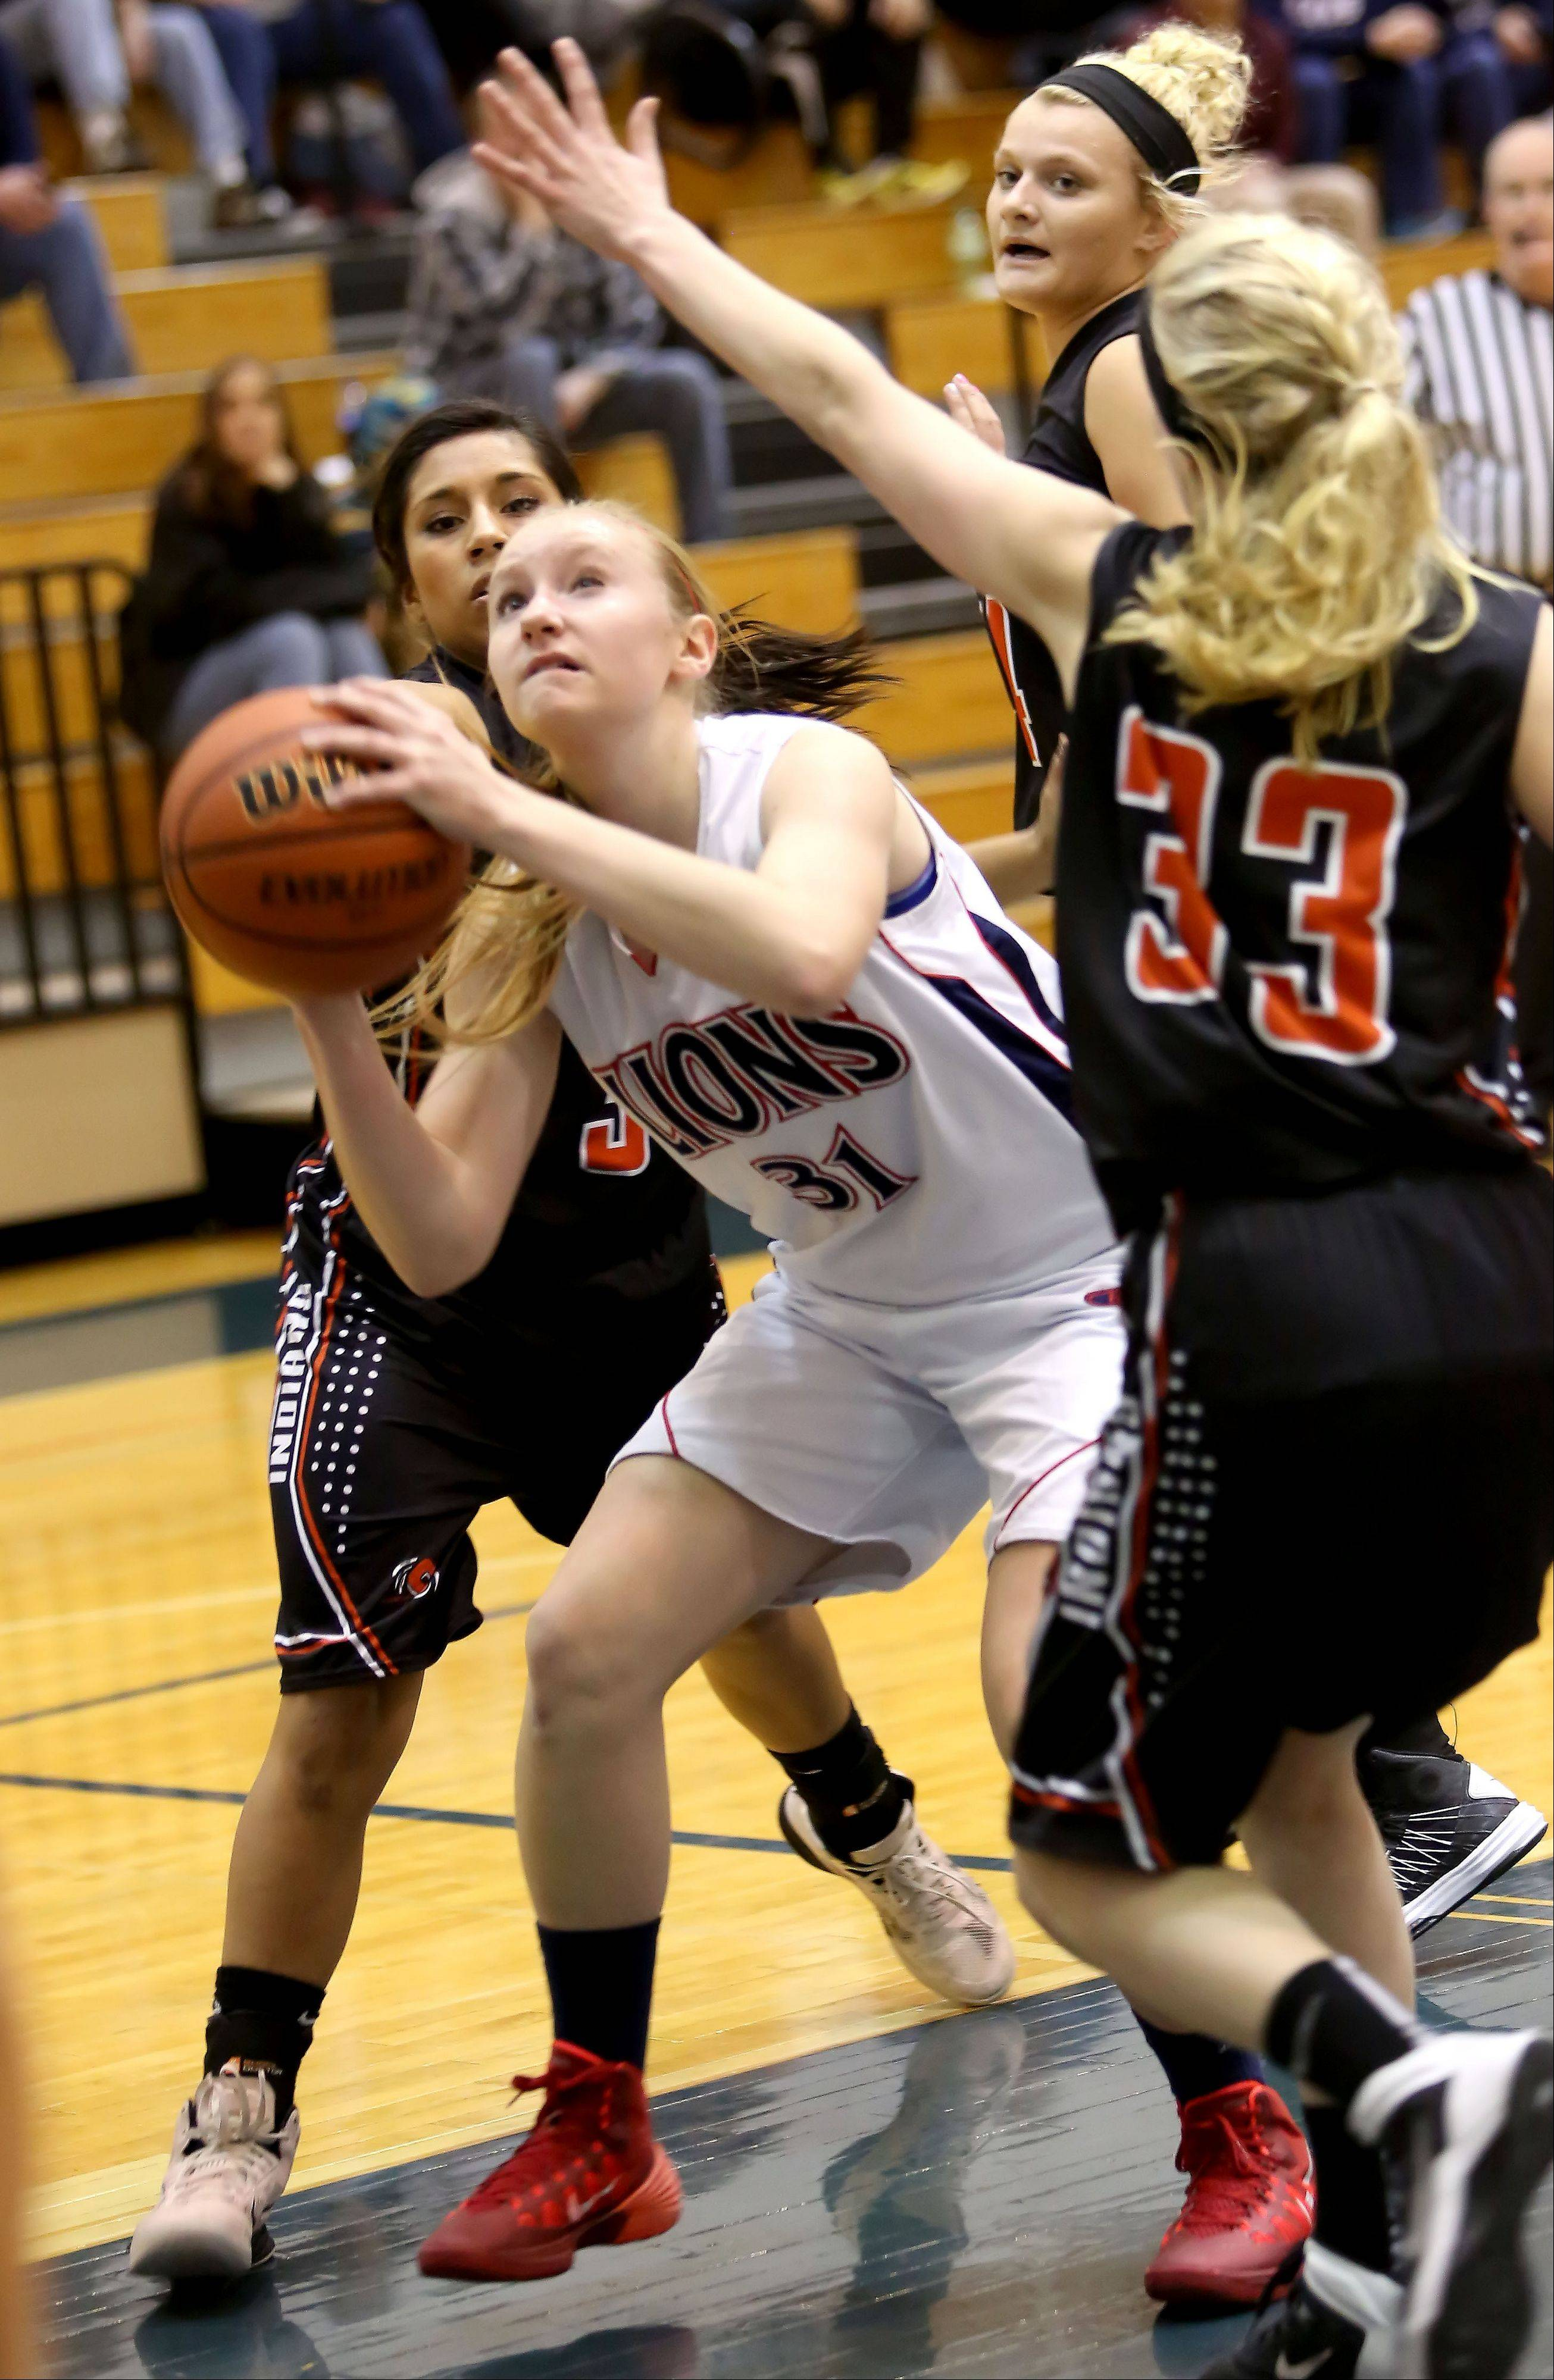 Lisle's Sarah Mogensen looks for room to shoot against Sandwich during Monday's basketball game.